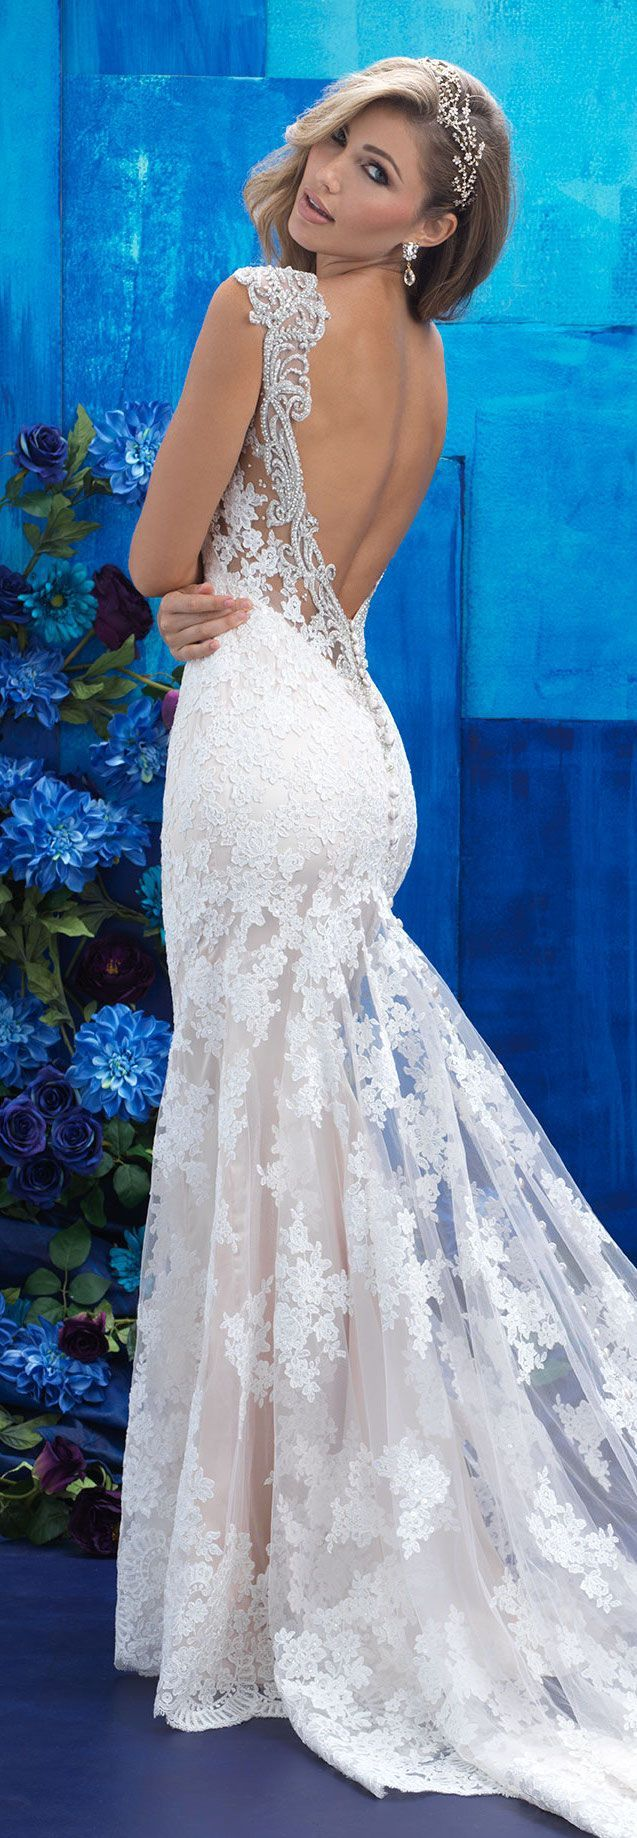 The 25 best lace wedding dresses ideas on pinterest lace the 25 best lace wedding dresses ideas on pinterest lace wedding dress lace wedding dress with sleeves and white lace wedding dress junglespirit Image collections